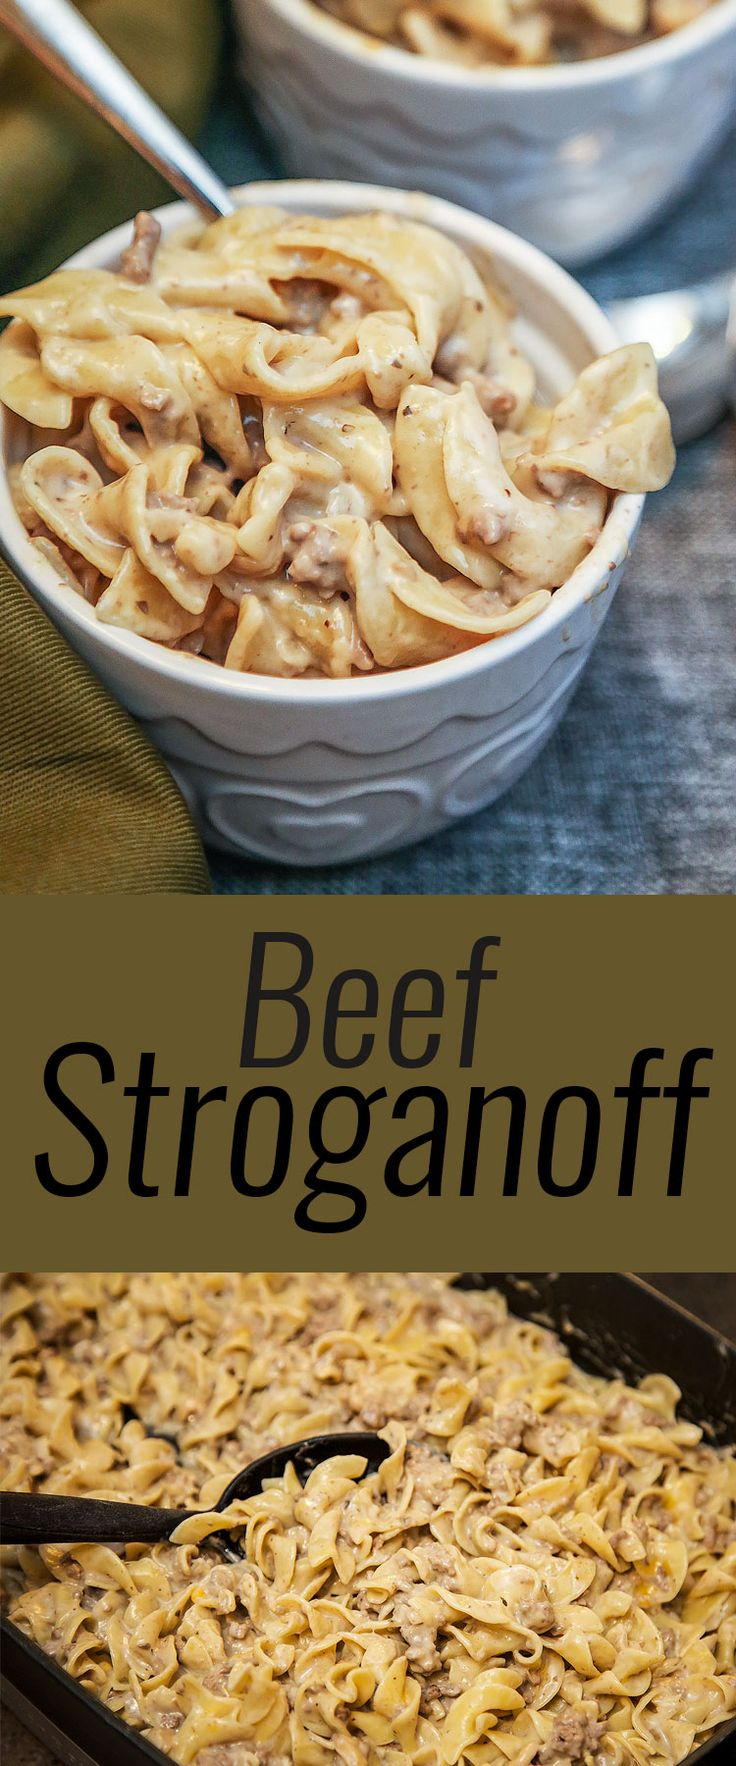 Best 25 ground beef recipes ideas on pinterest quick for Quick and easy dinner ideas with hamburger meat